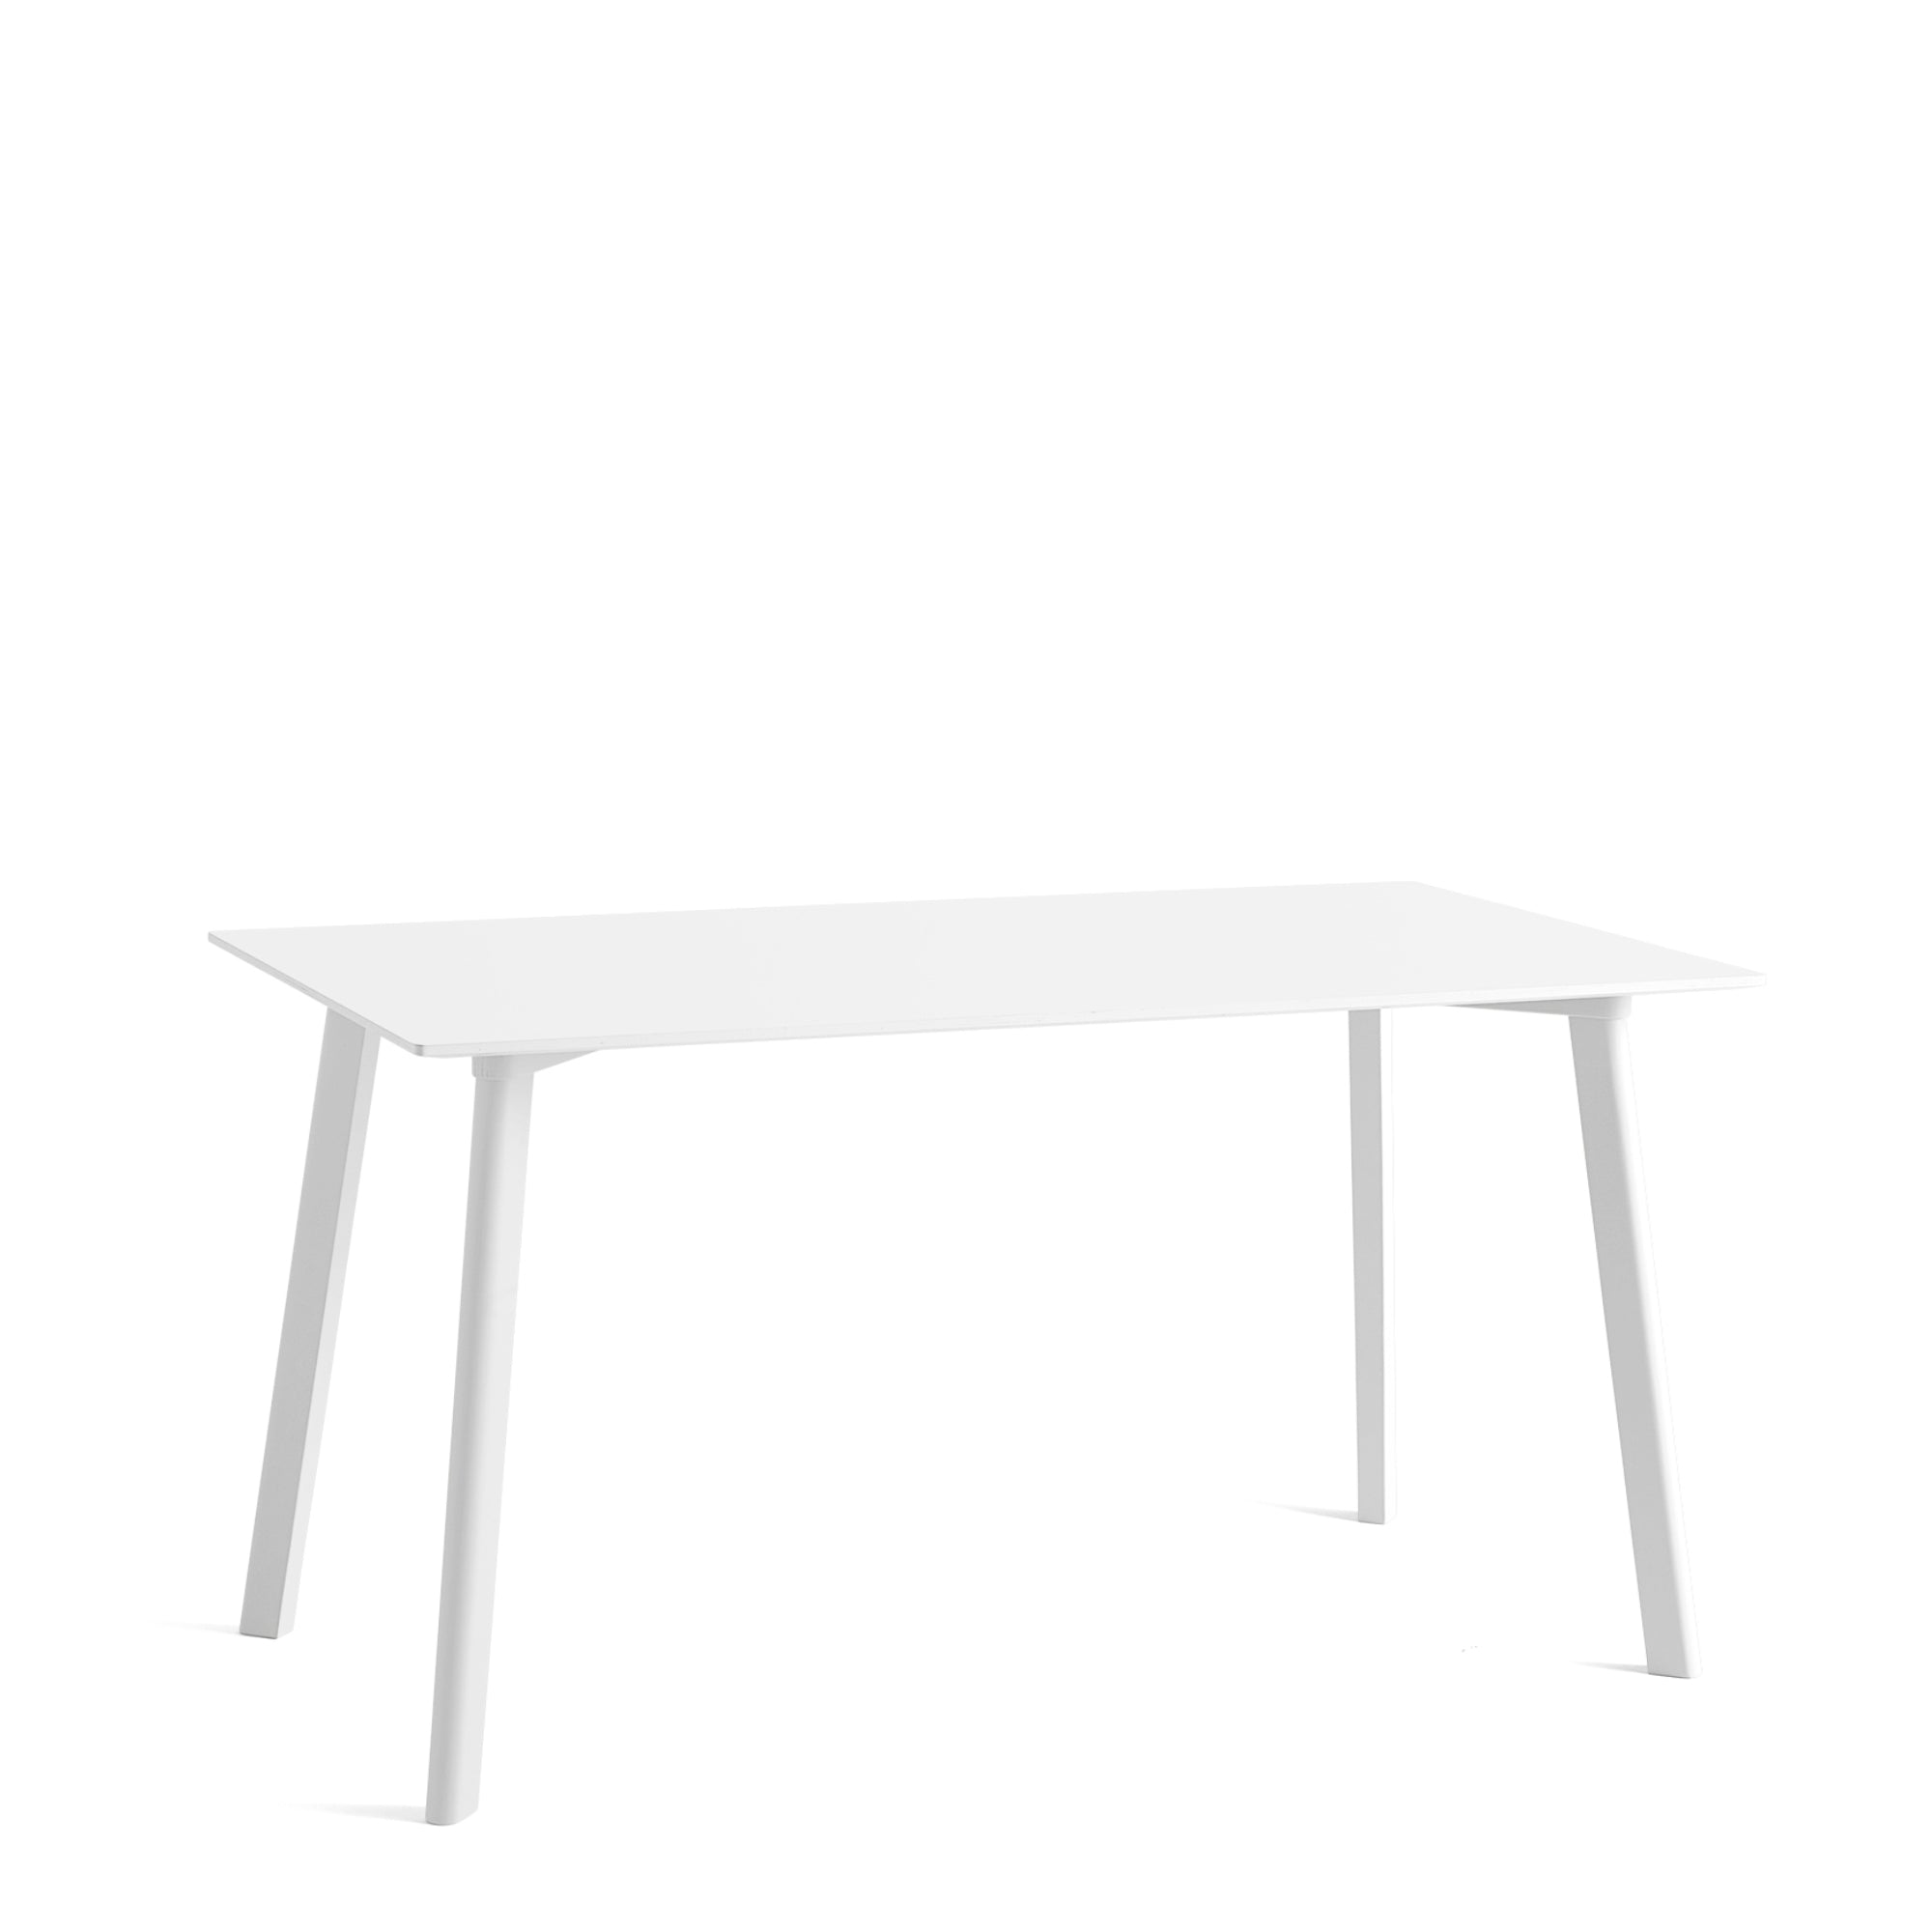 HAY CPH Deux 210 1400mm White Pearl White 0029